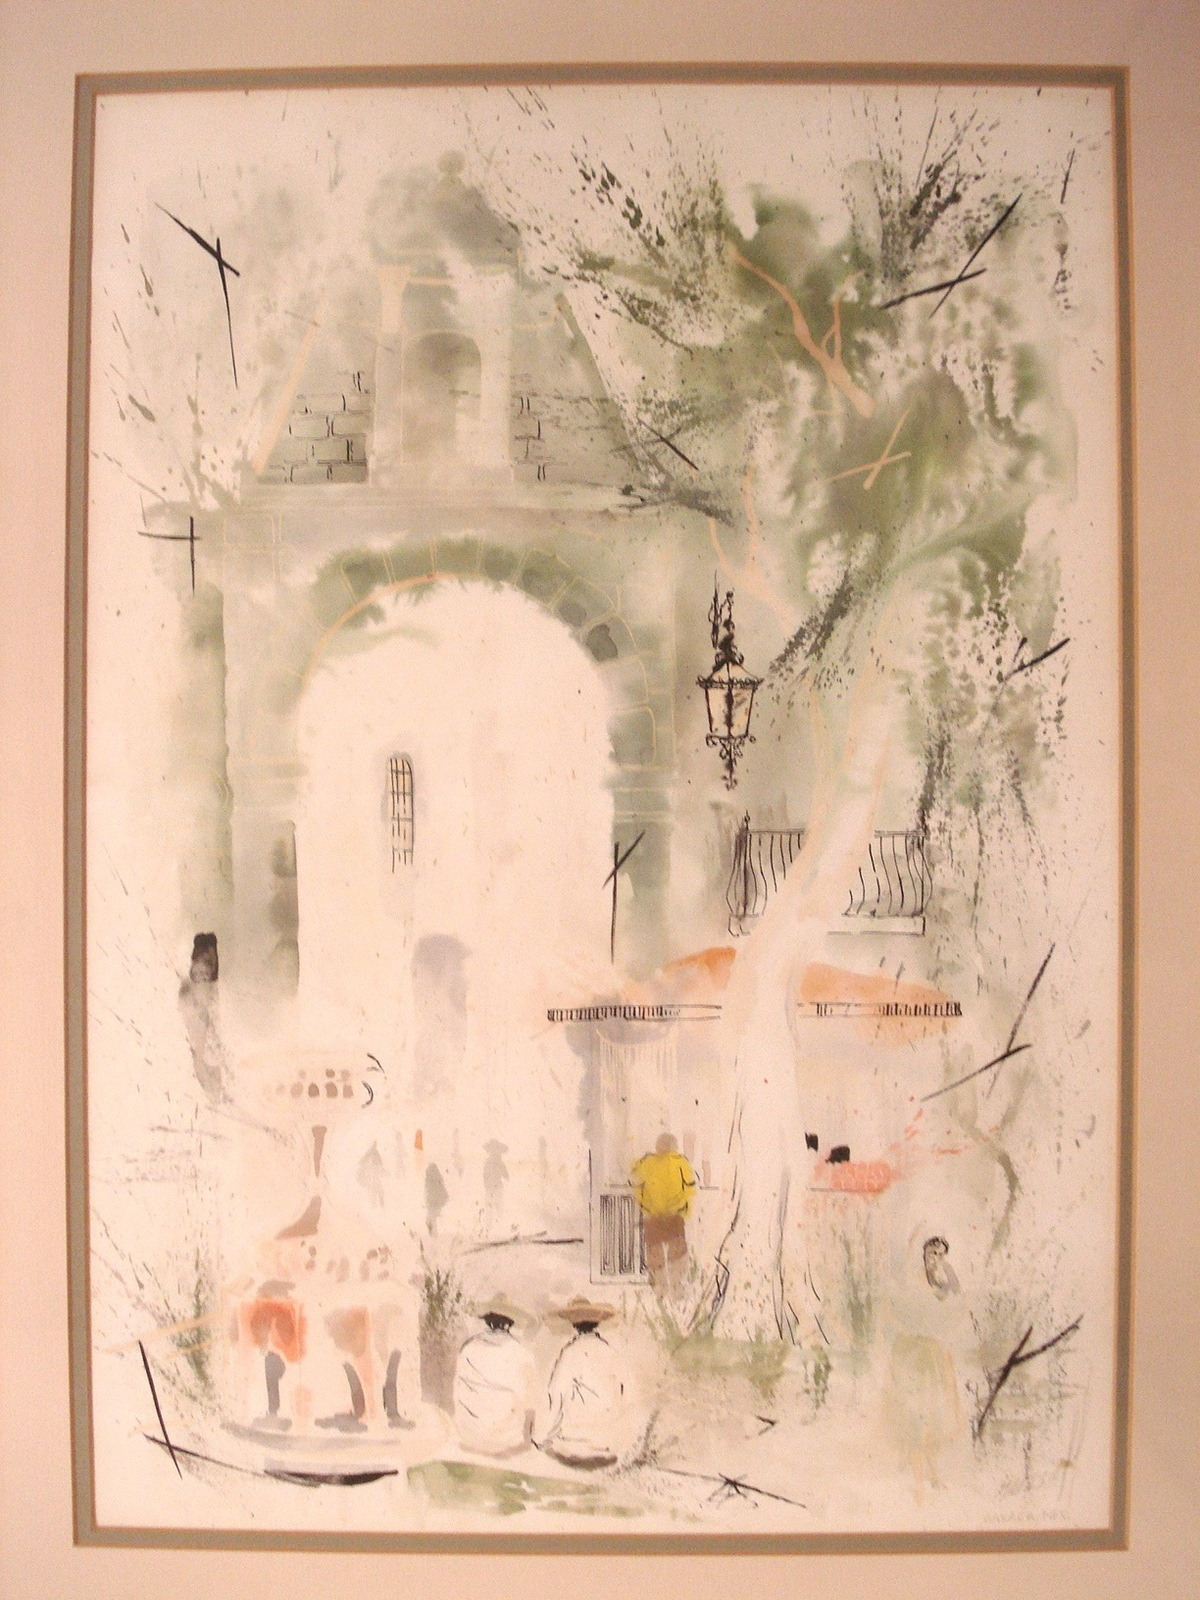 Mexican Decor Watercolor Painting Genre Signed Musse Oaxaca Mexico 01271